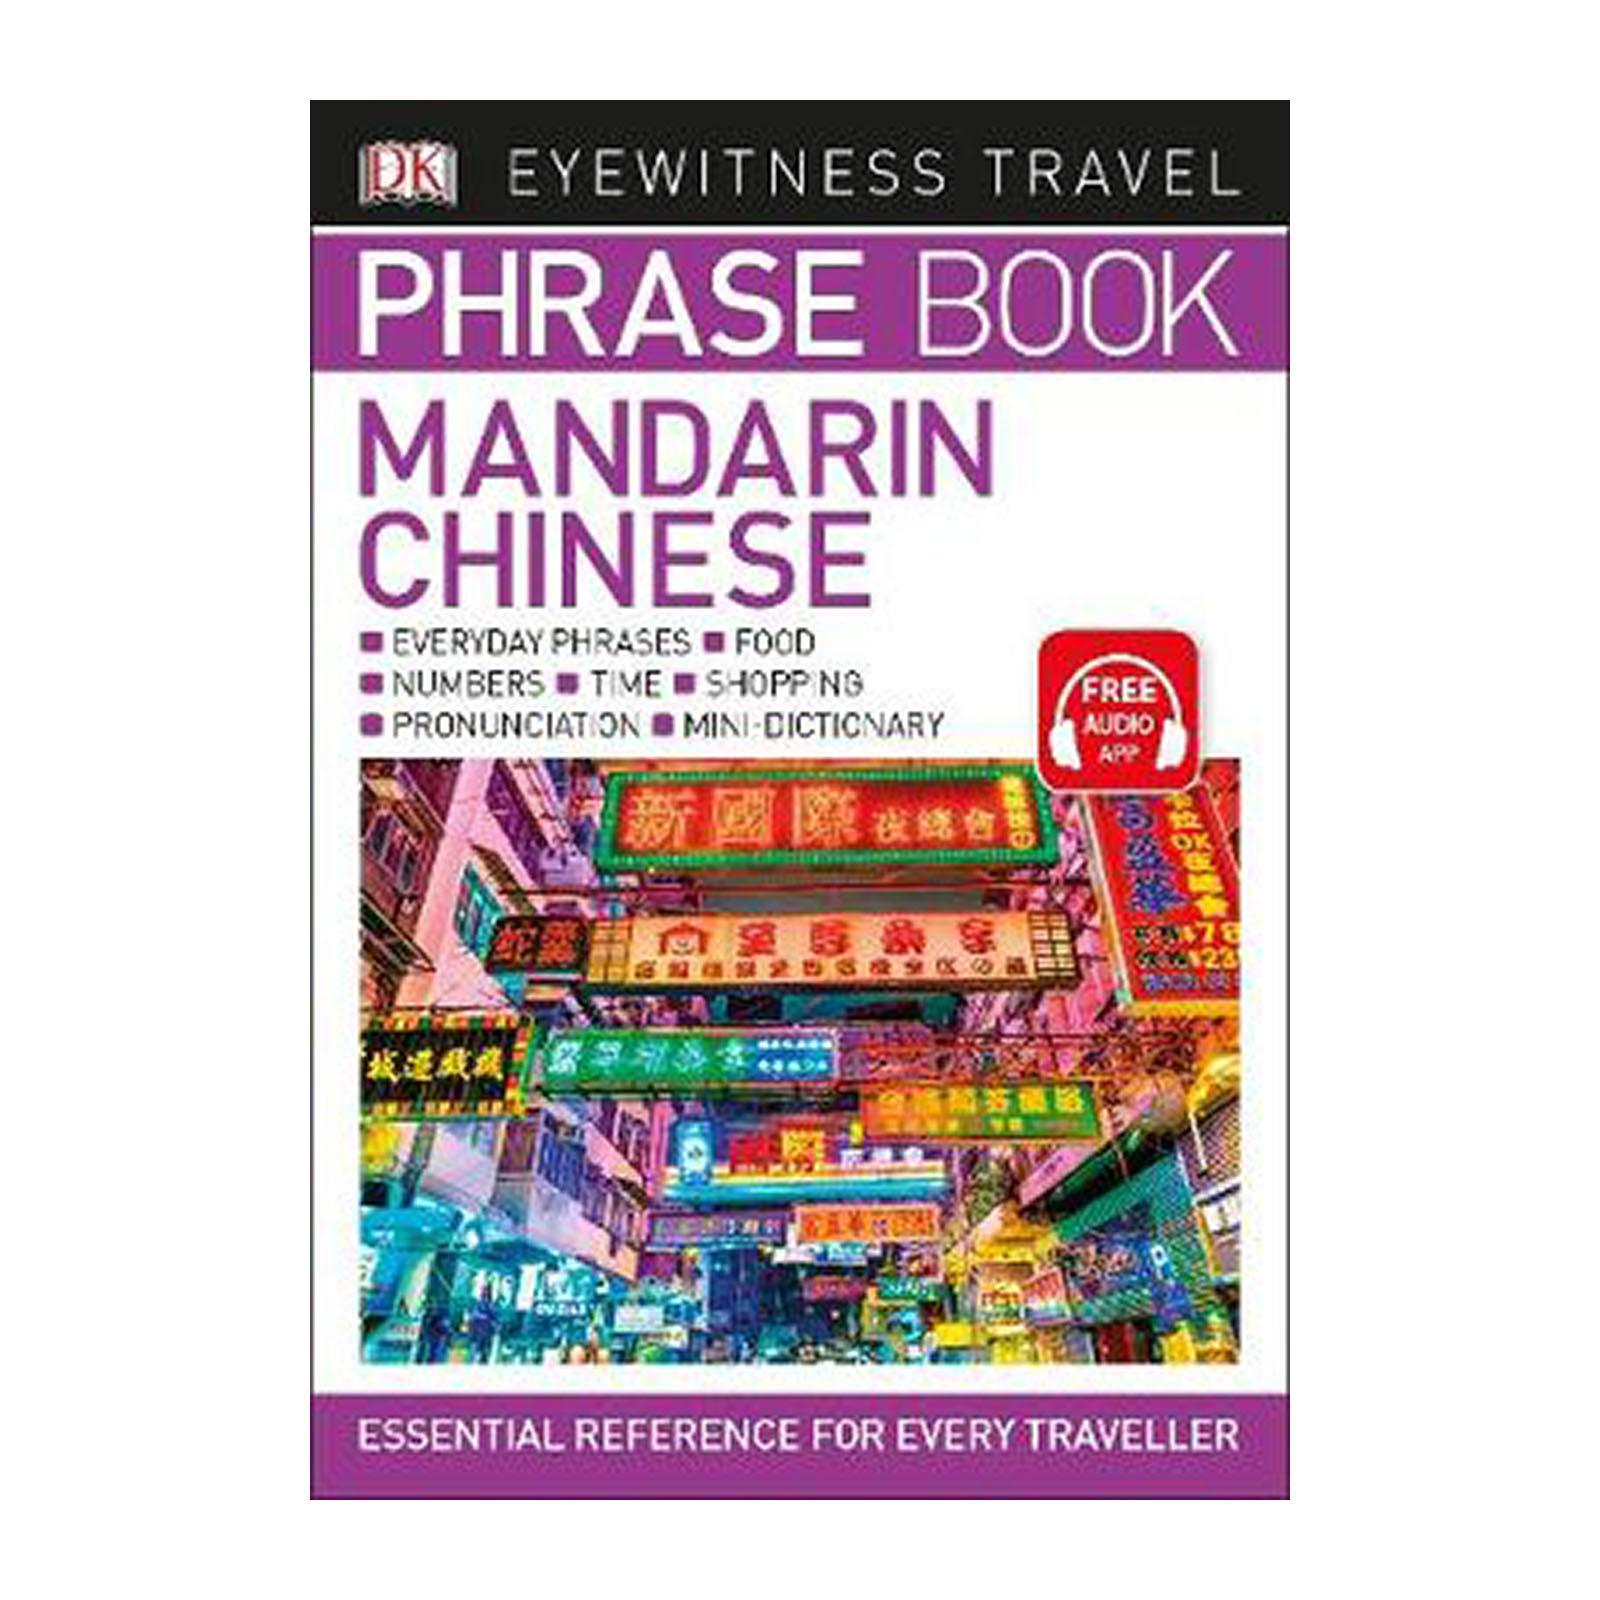 Eyewitness Travel Phrase Book Mandarin Chinese: Essential Reference For Every Traveller (Paperback)